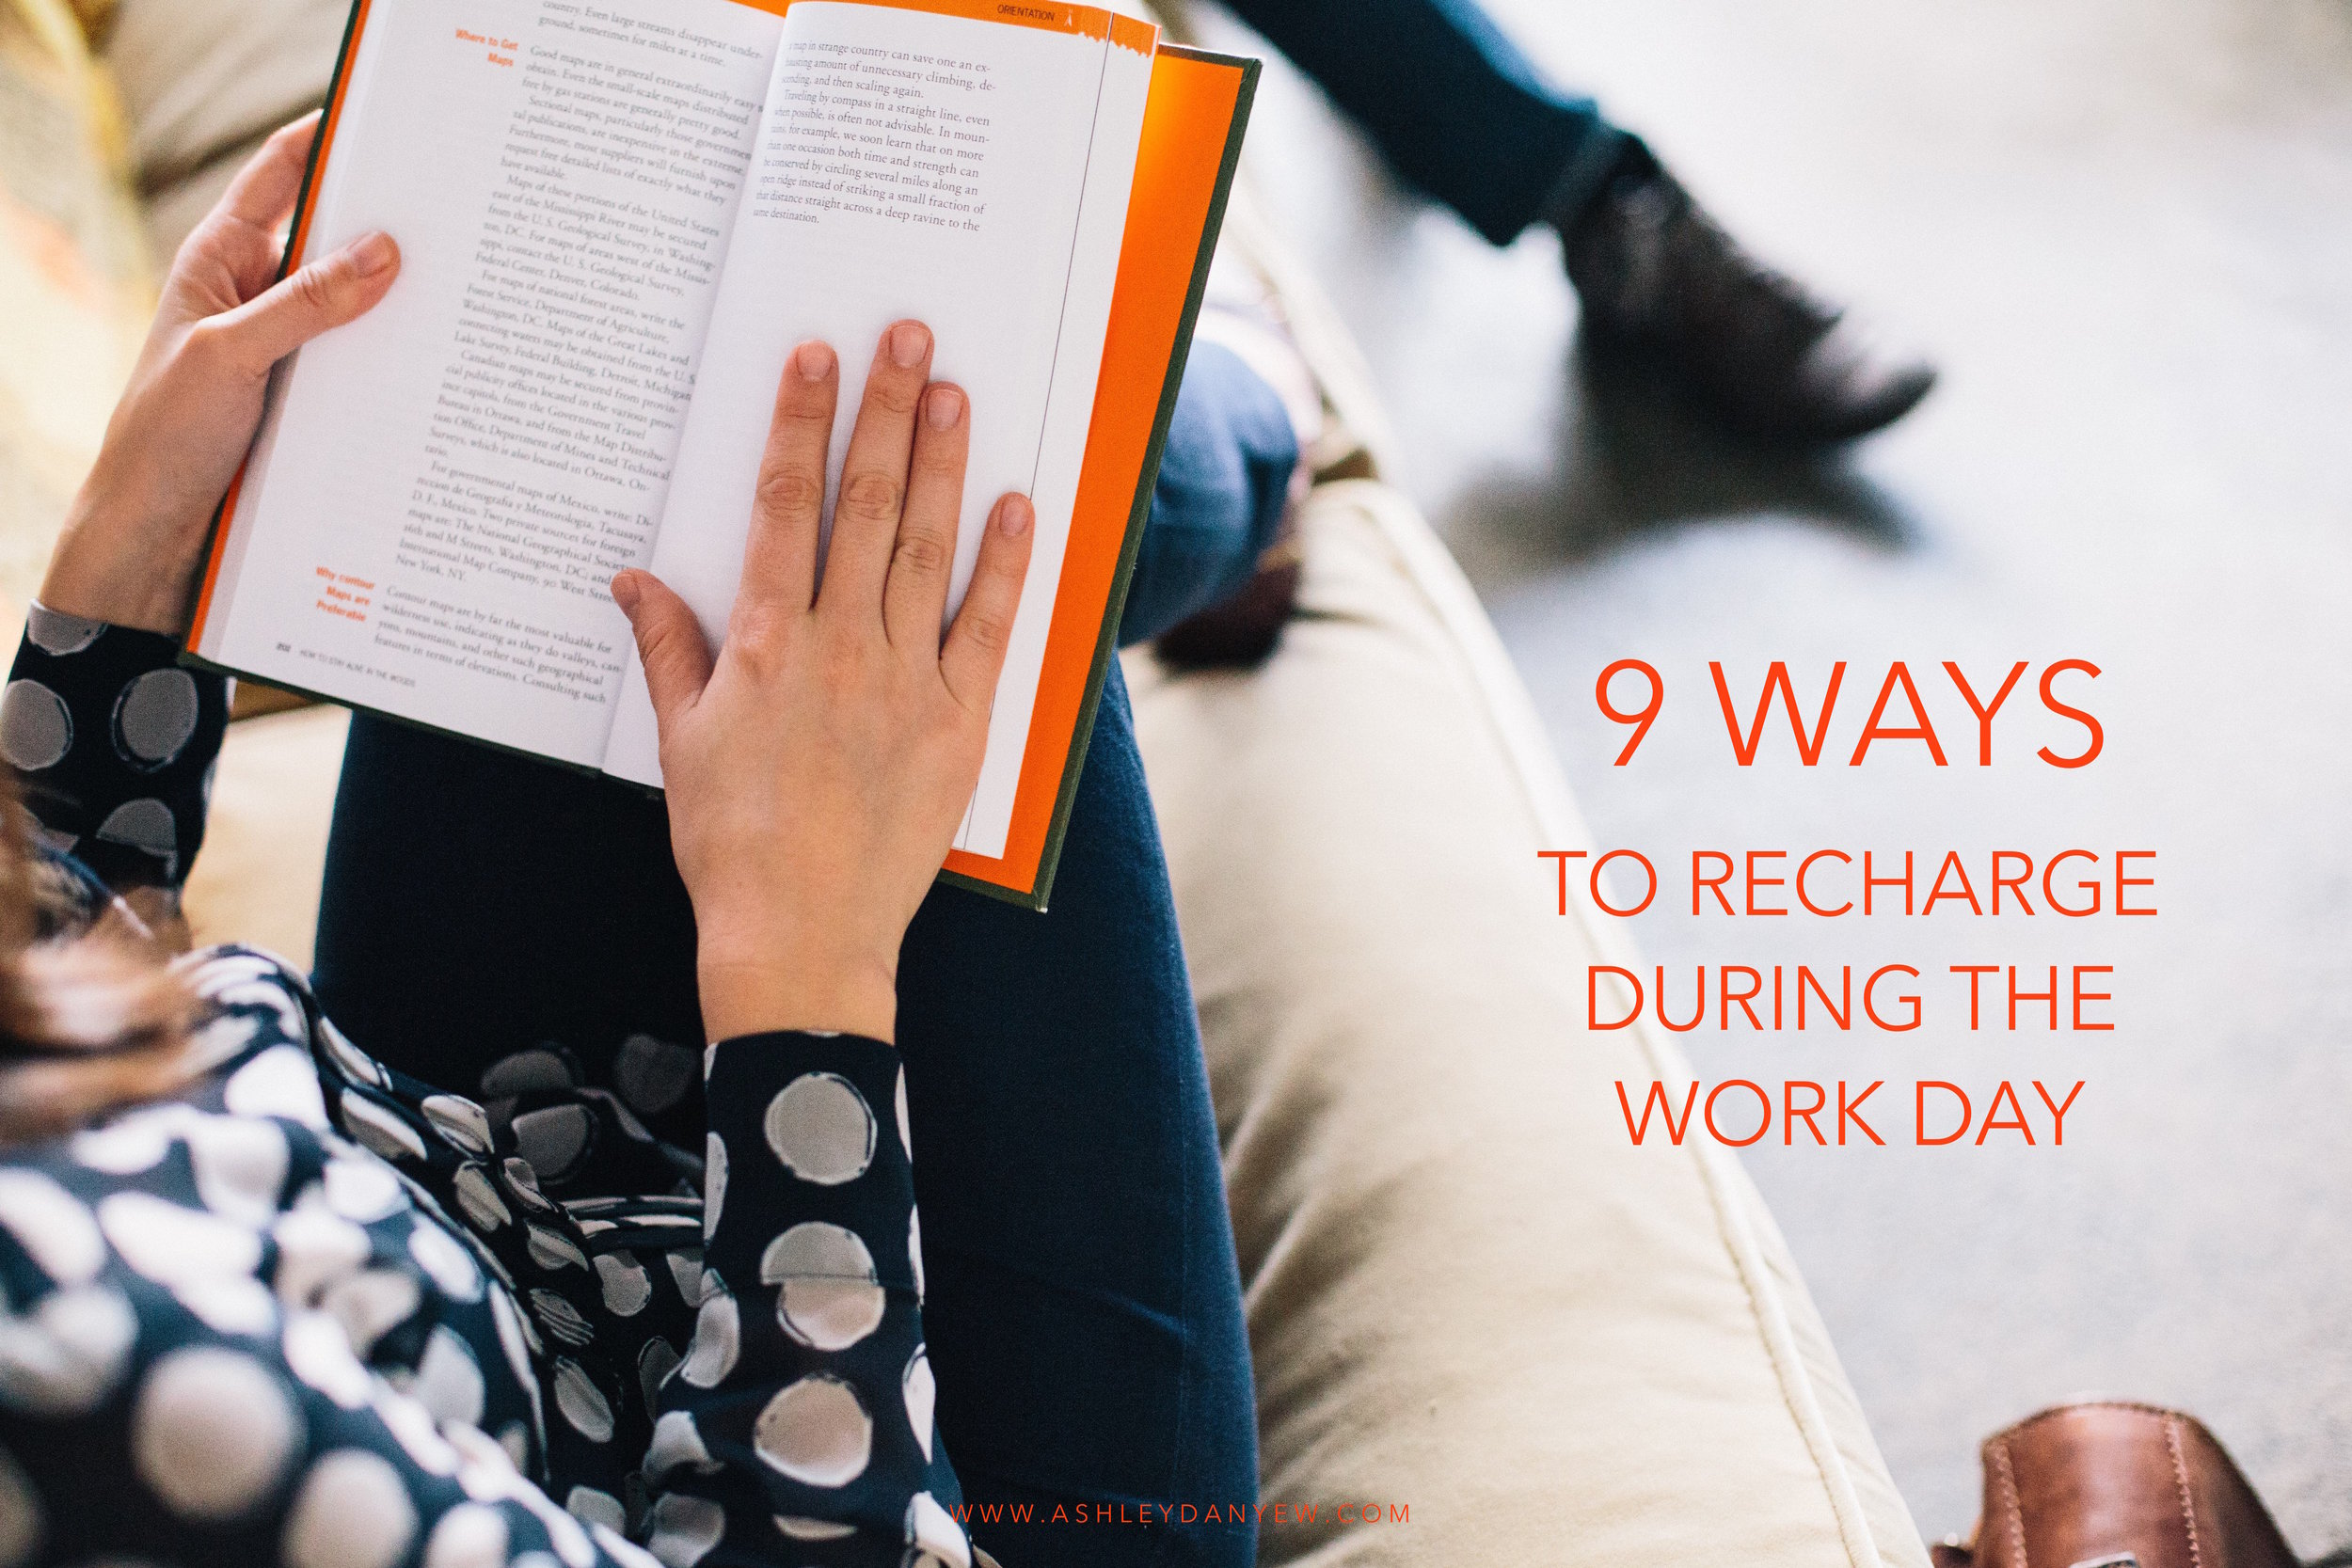 9 Ways to Recharge During the Work Day | Ashley Danyew.jpg